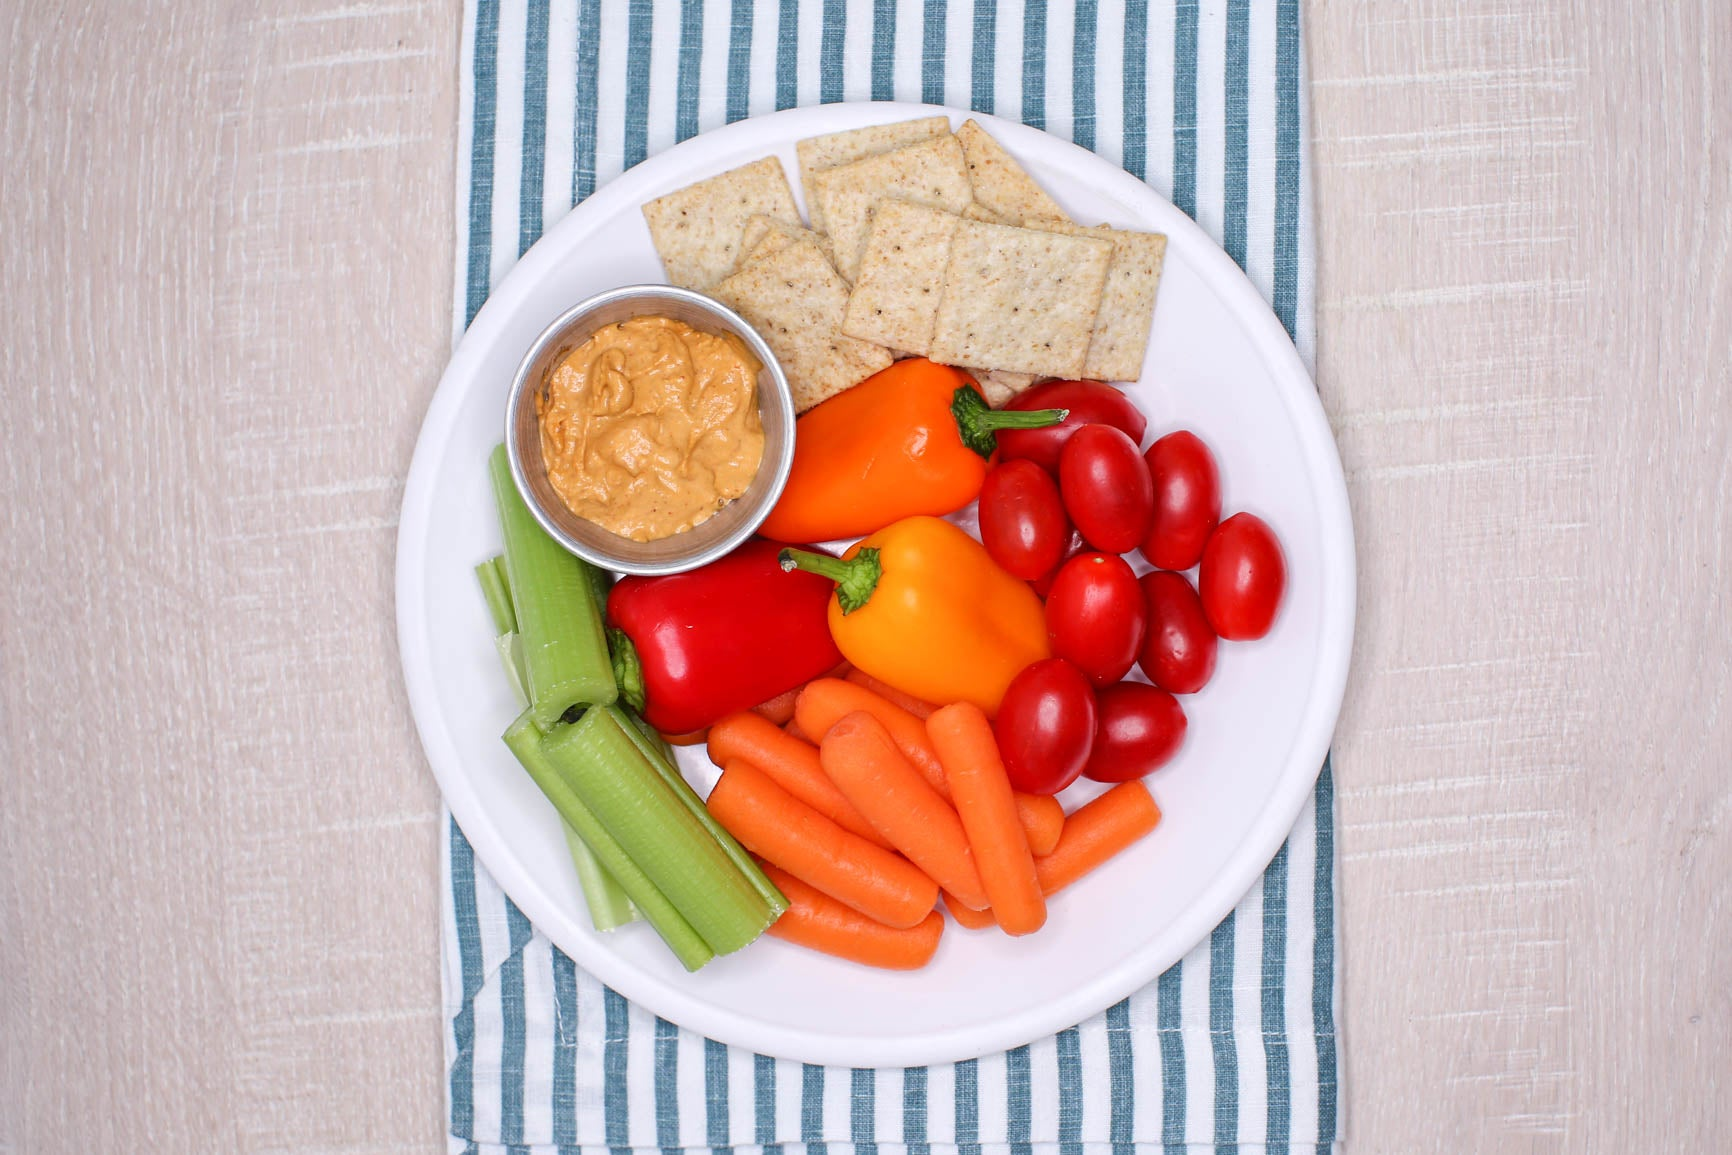 Snack Box - Chipotle Almond Dip, Veggies, & GF crackers